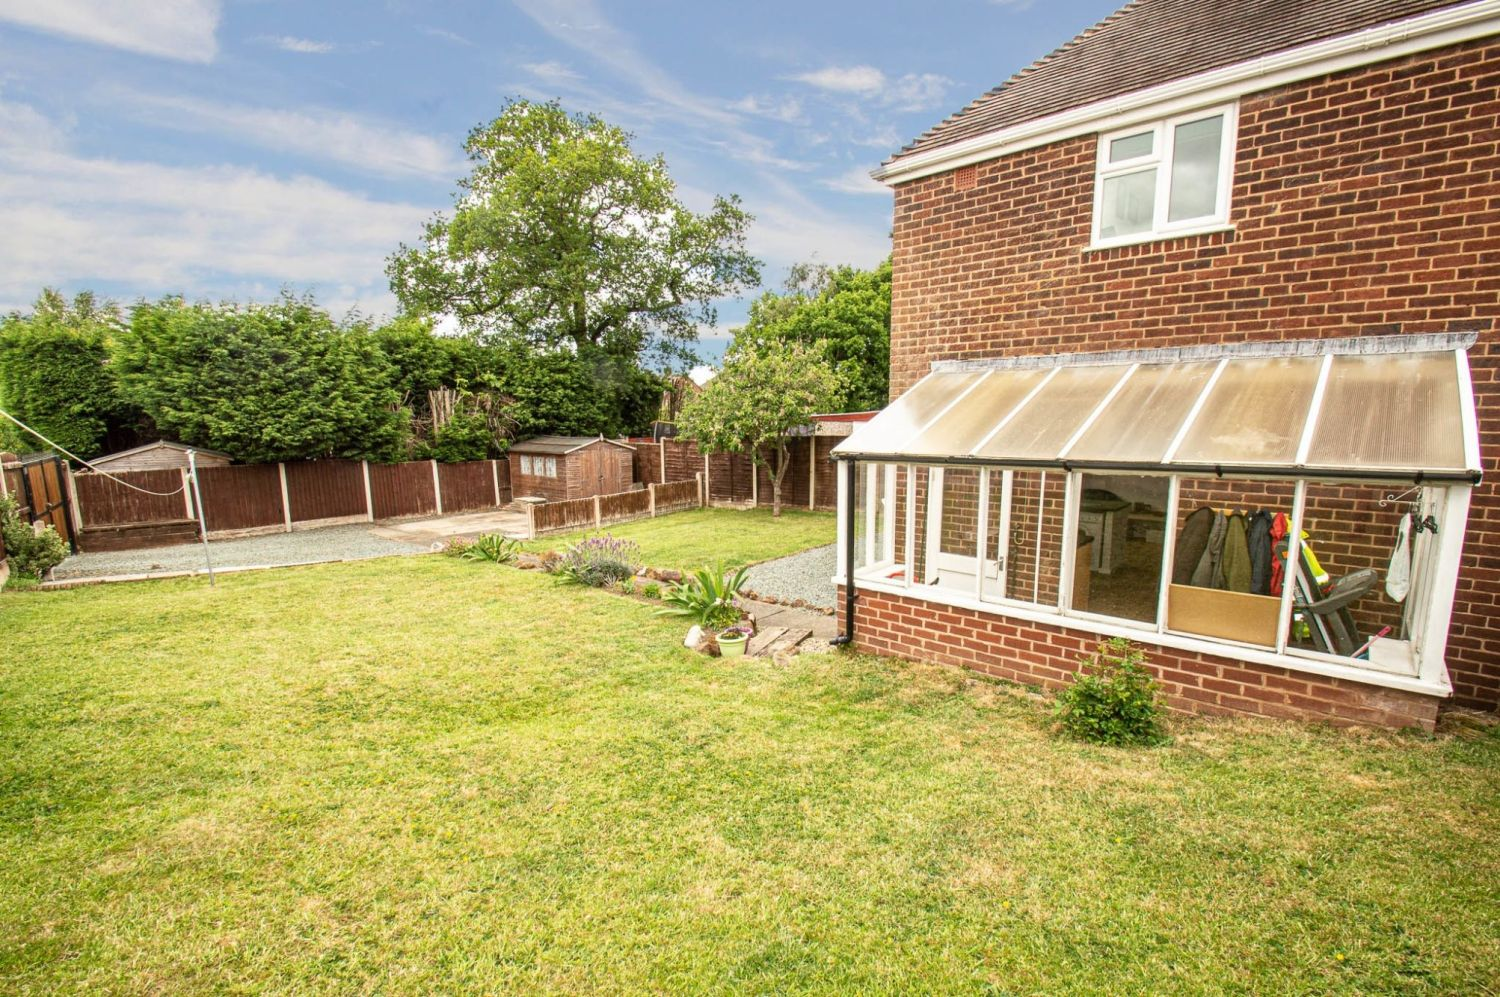 3 bed semi-detached for sale in Gauden Road, Wollescote  - Property Image 13